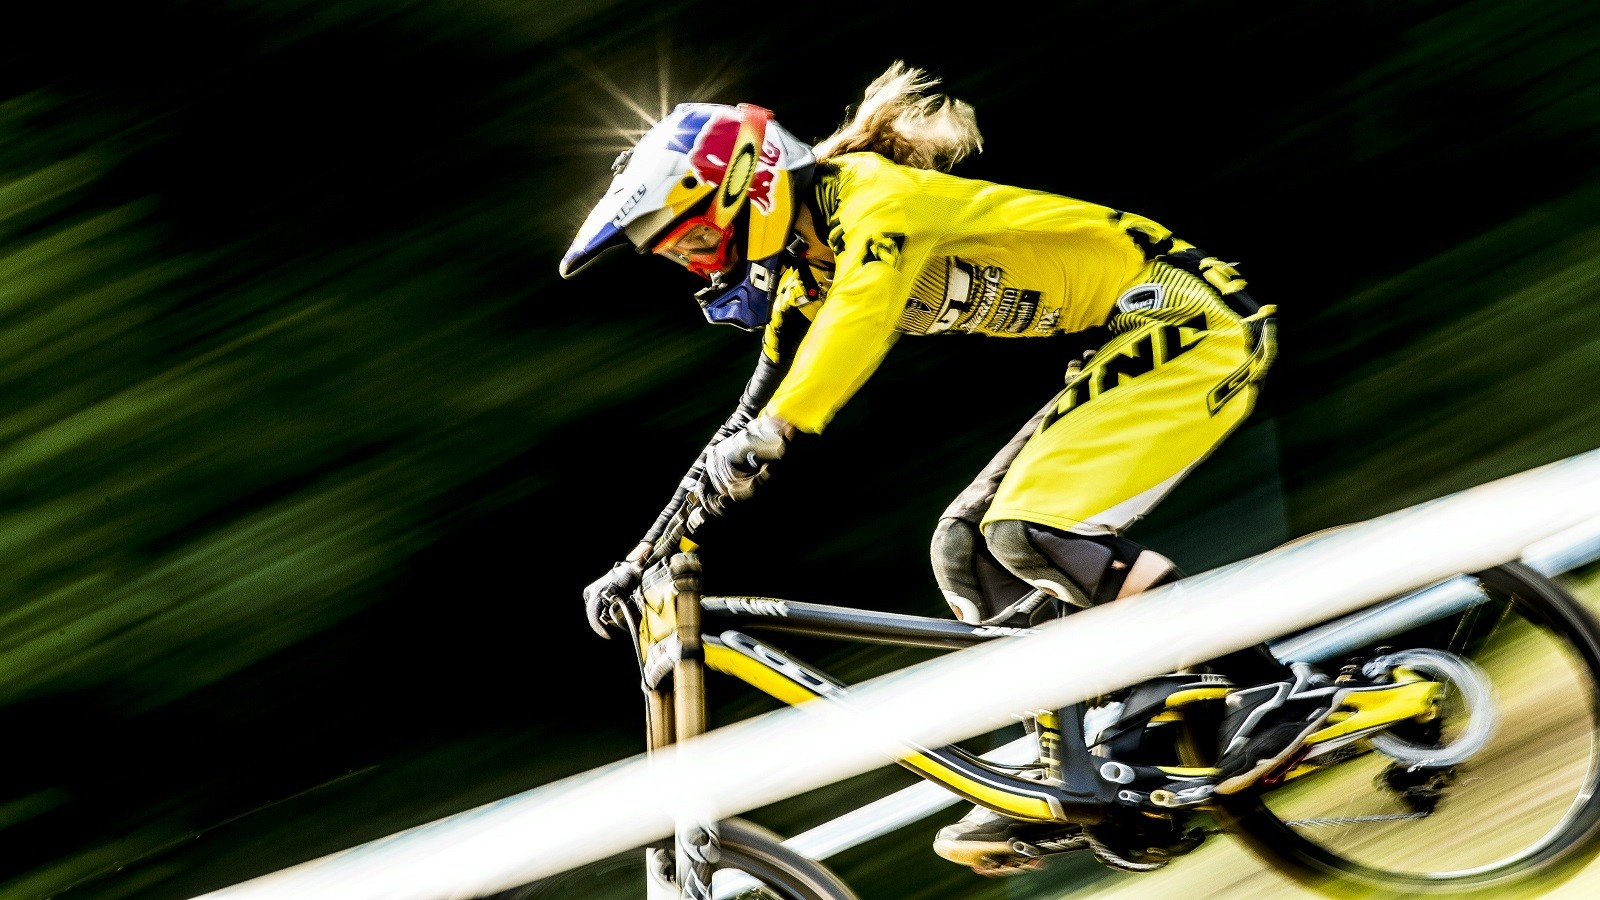 Rachel Atherton's focus on racing and training is sharp